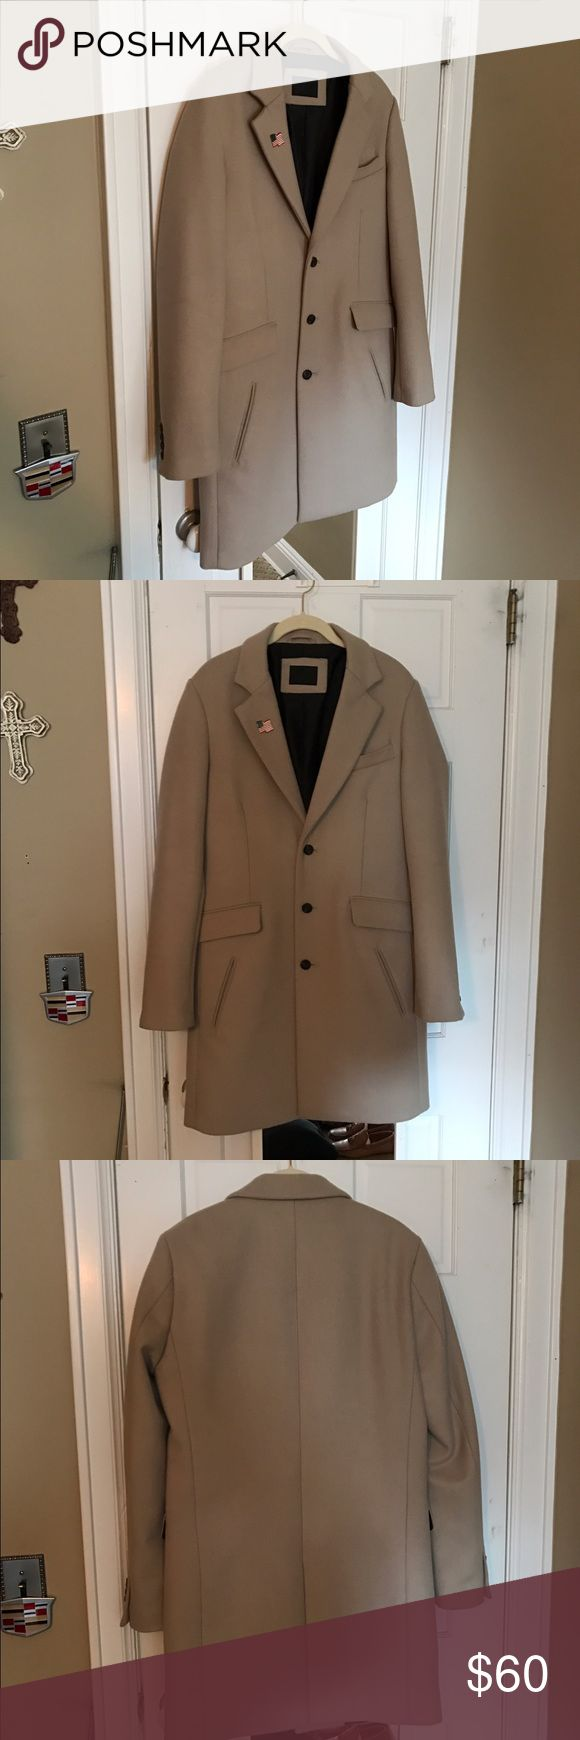 Asos stone topcoat Asos stone topcoat worn only a handful of times. Size small but can fit a medium, minor small mark under the pin, can post pic if you would like. ASOS Jackets & Coats Pea Coats